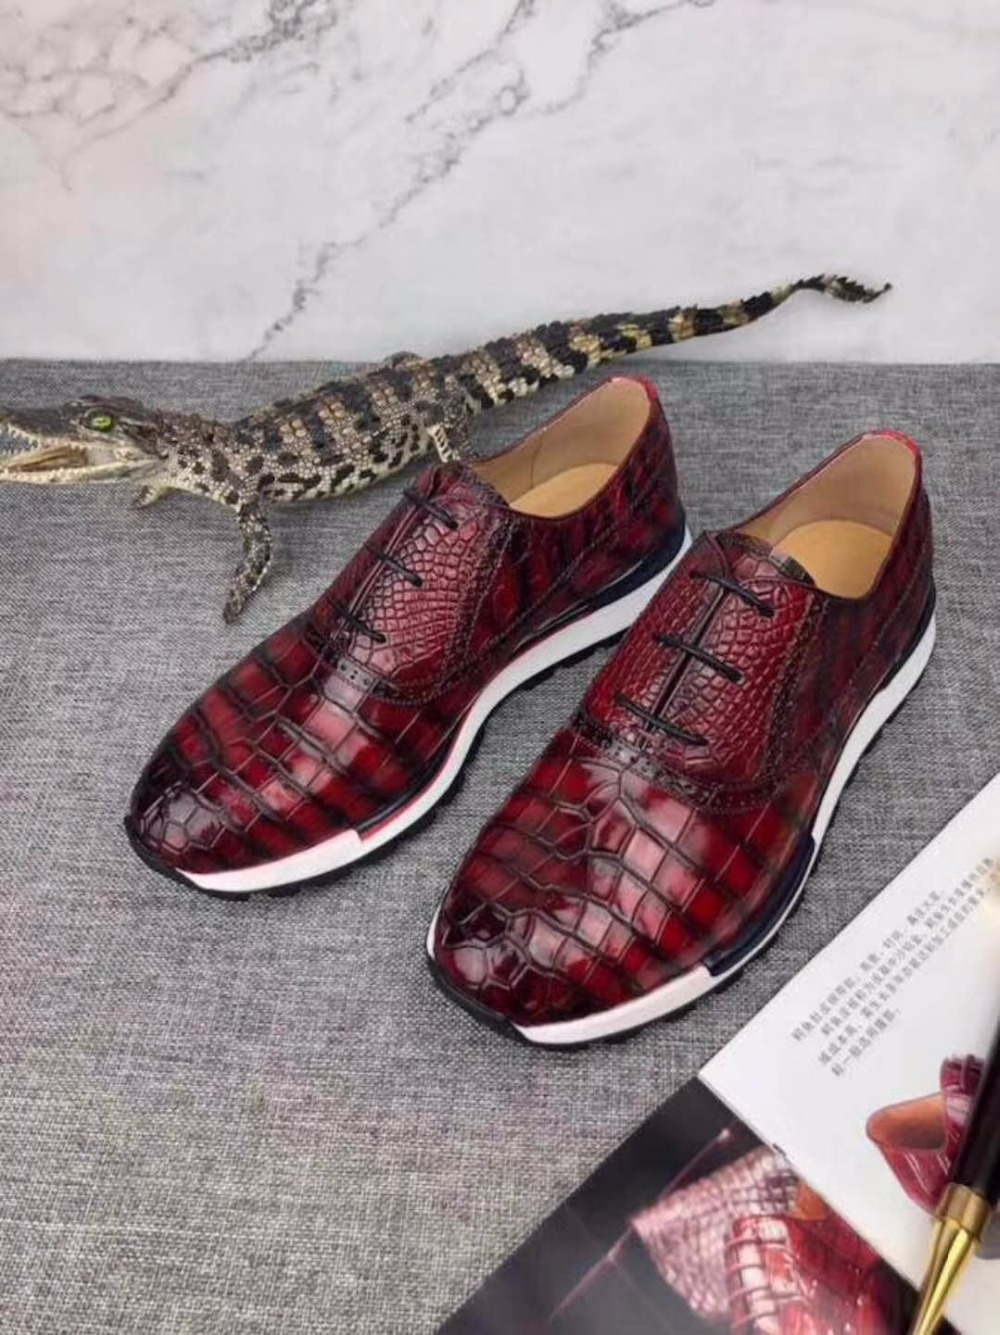 100% Genuine real crocodile belly glossy skin men shoe durable solid crocodile skin men business shoe with 2 colors mixed skin ws 49 2 статуэтка мудрая сова